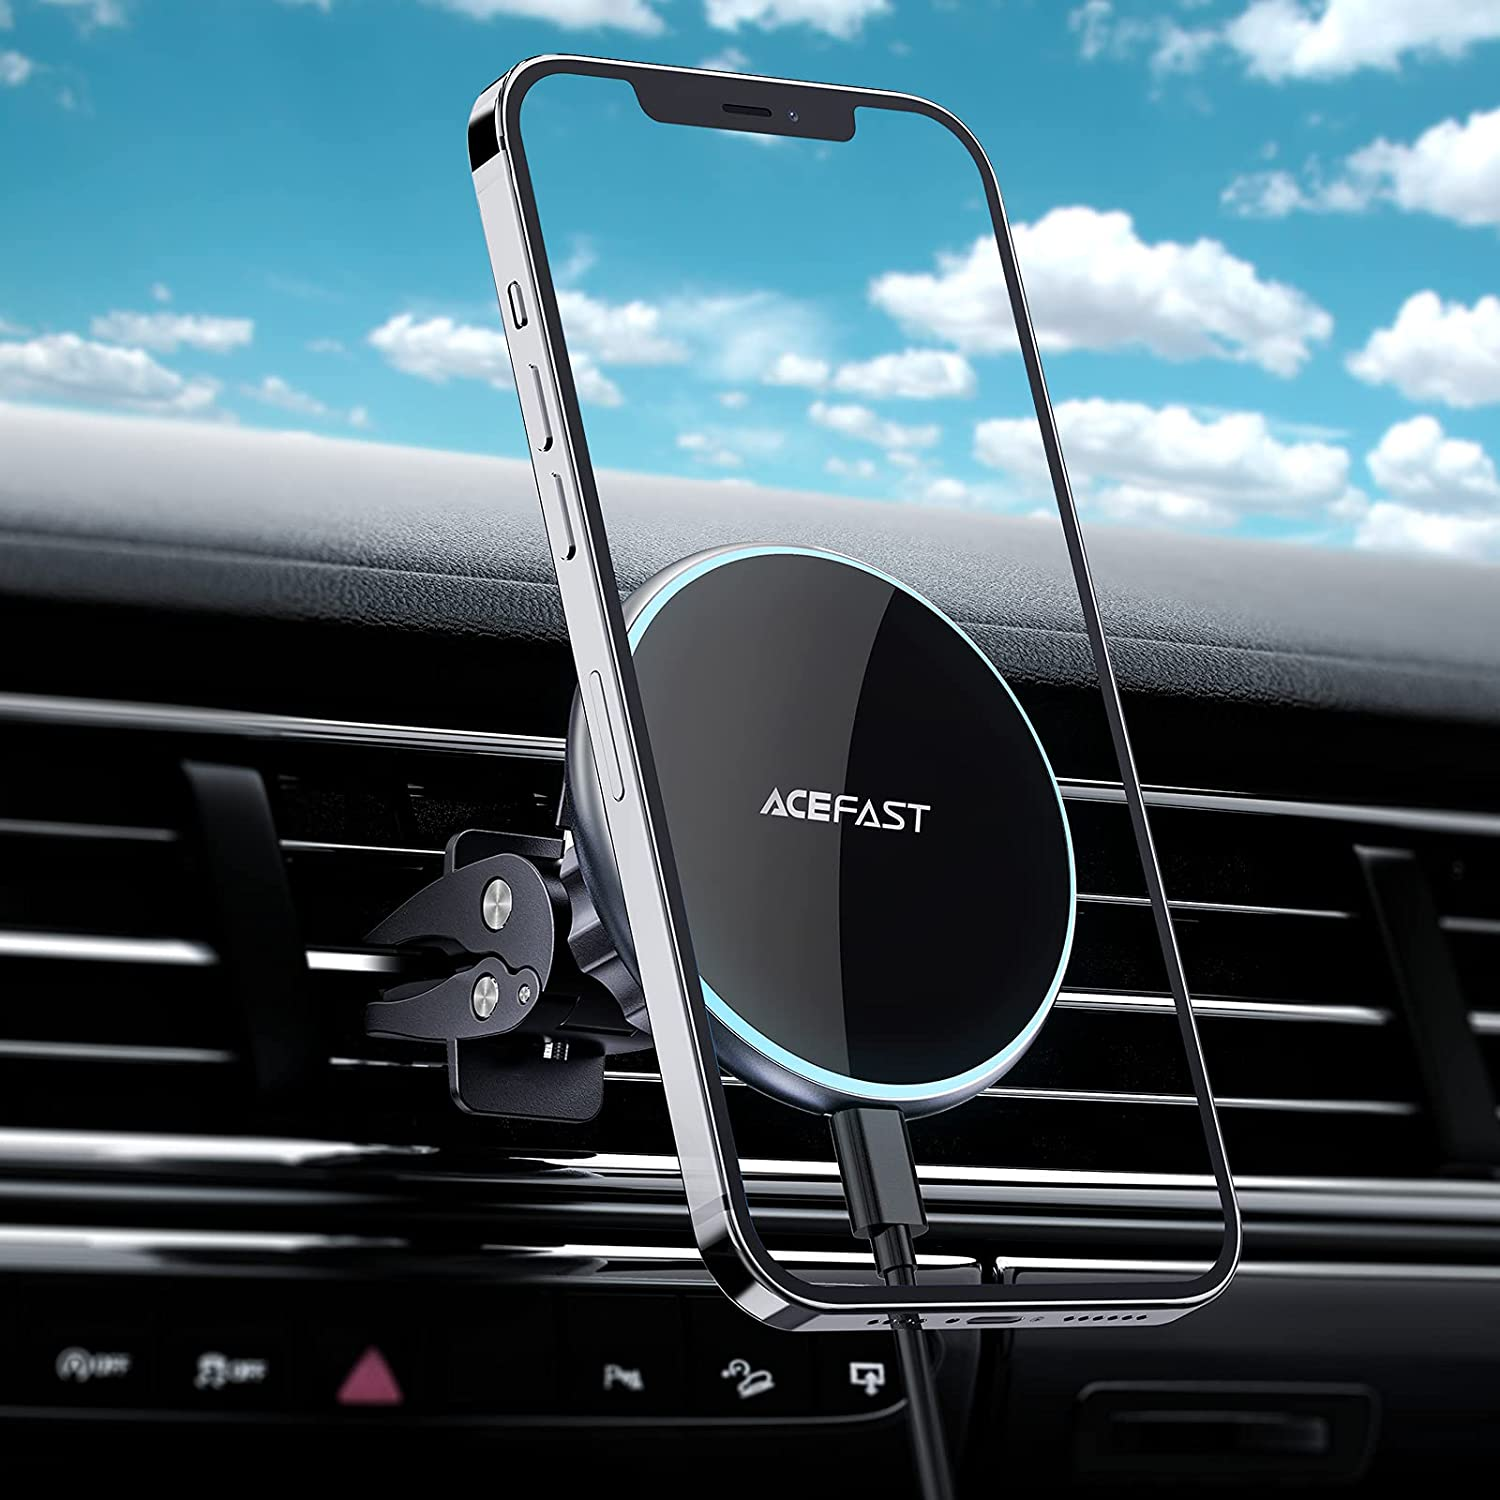 ACEFAST Zinc Alloy Magnetic Wireless Car Charger Compatible with iPhone 12 Pro Max/12 Pro/12, Automatically Align The Position for Charging for iPhone 12 Series, Compatible with Magsafe Cases